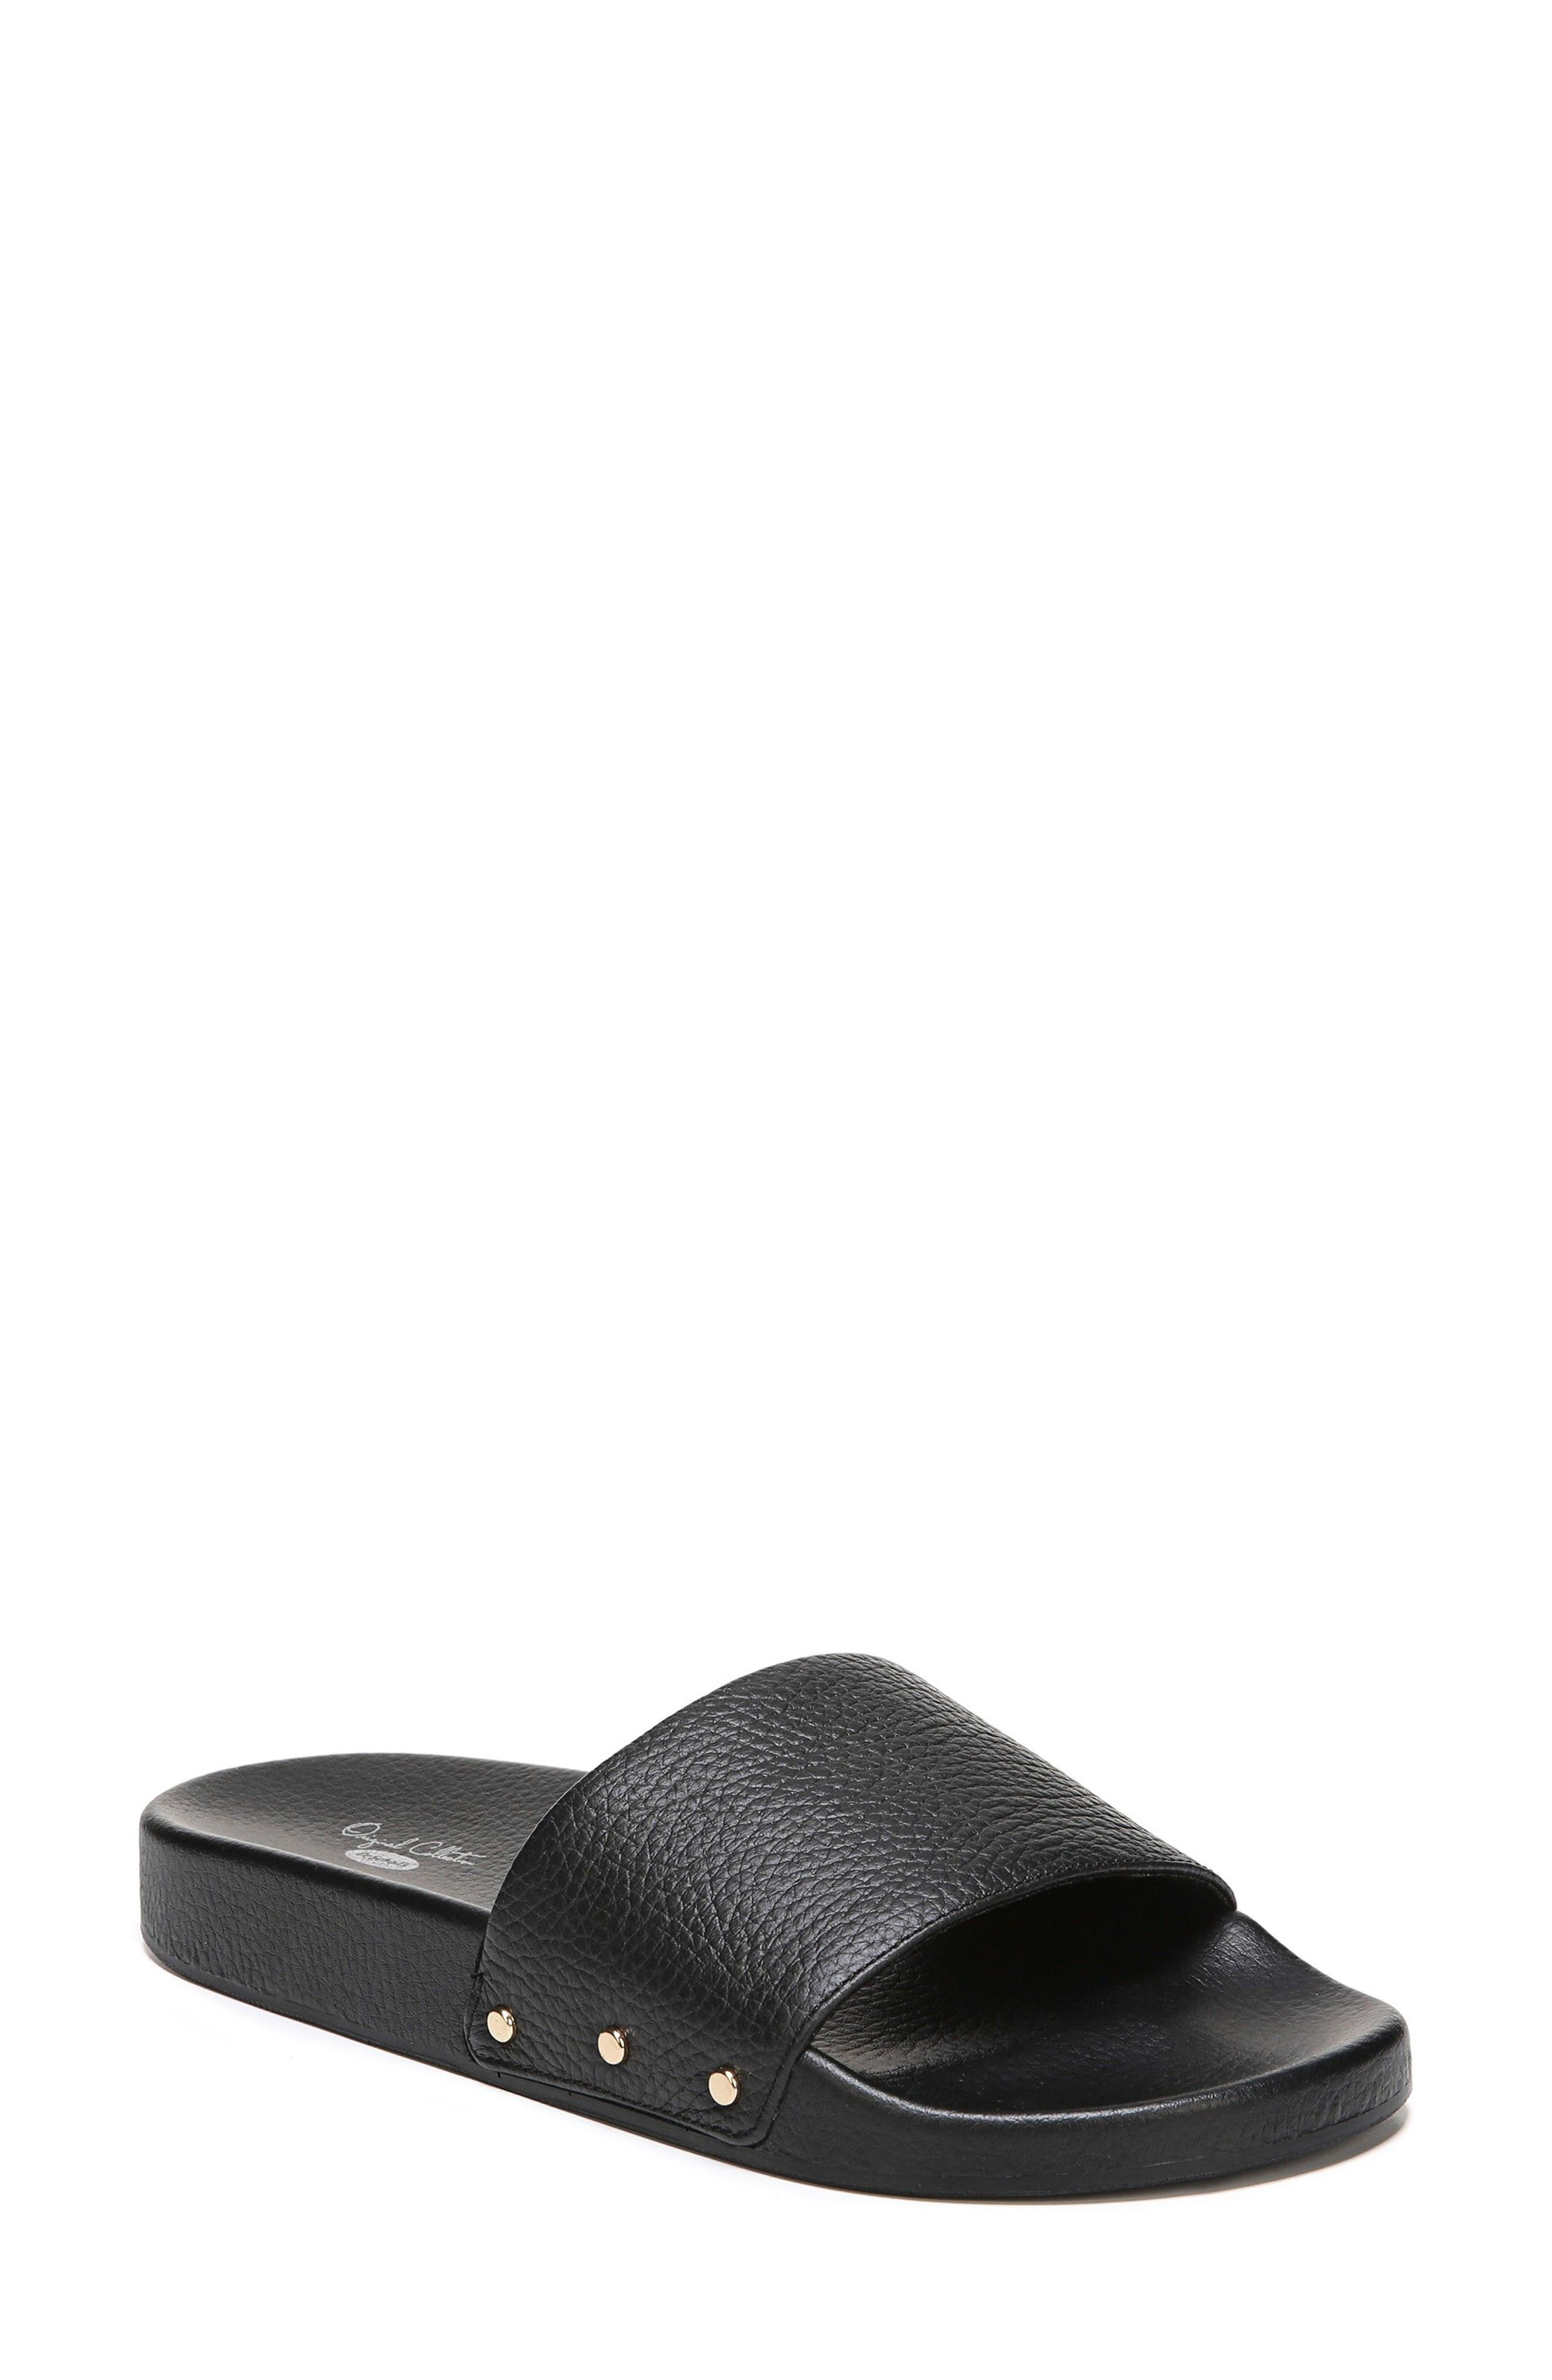 DR. SCHOLL'S, Pisces Slide Sandal, Main thumbnail 1, color, BLACK LEATHER